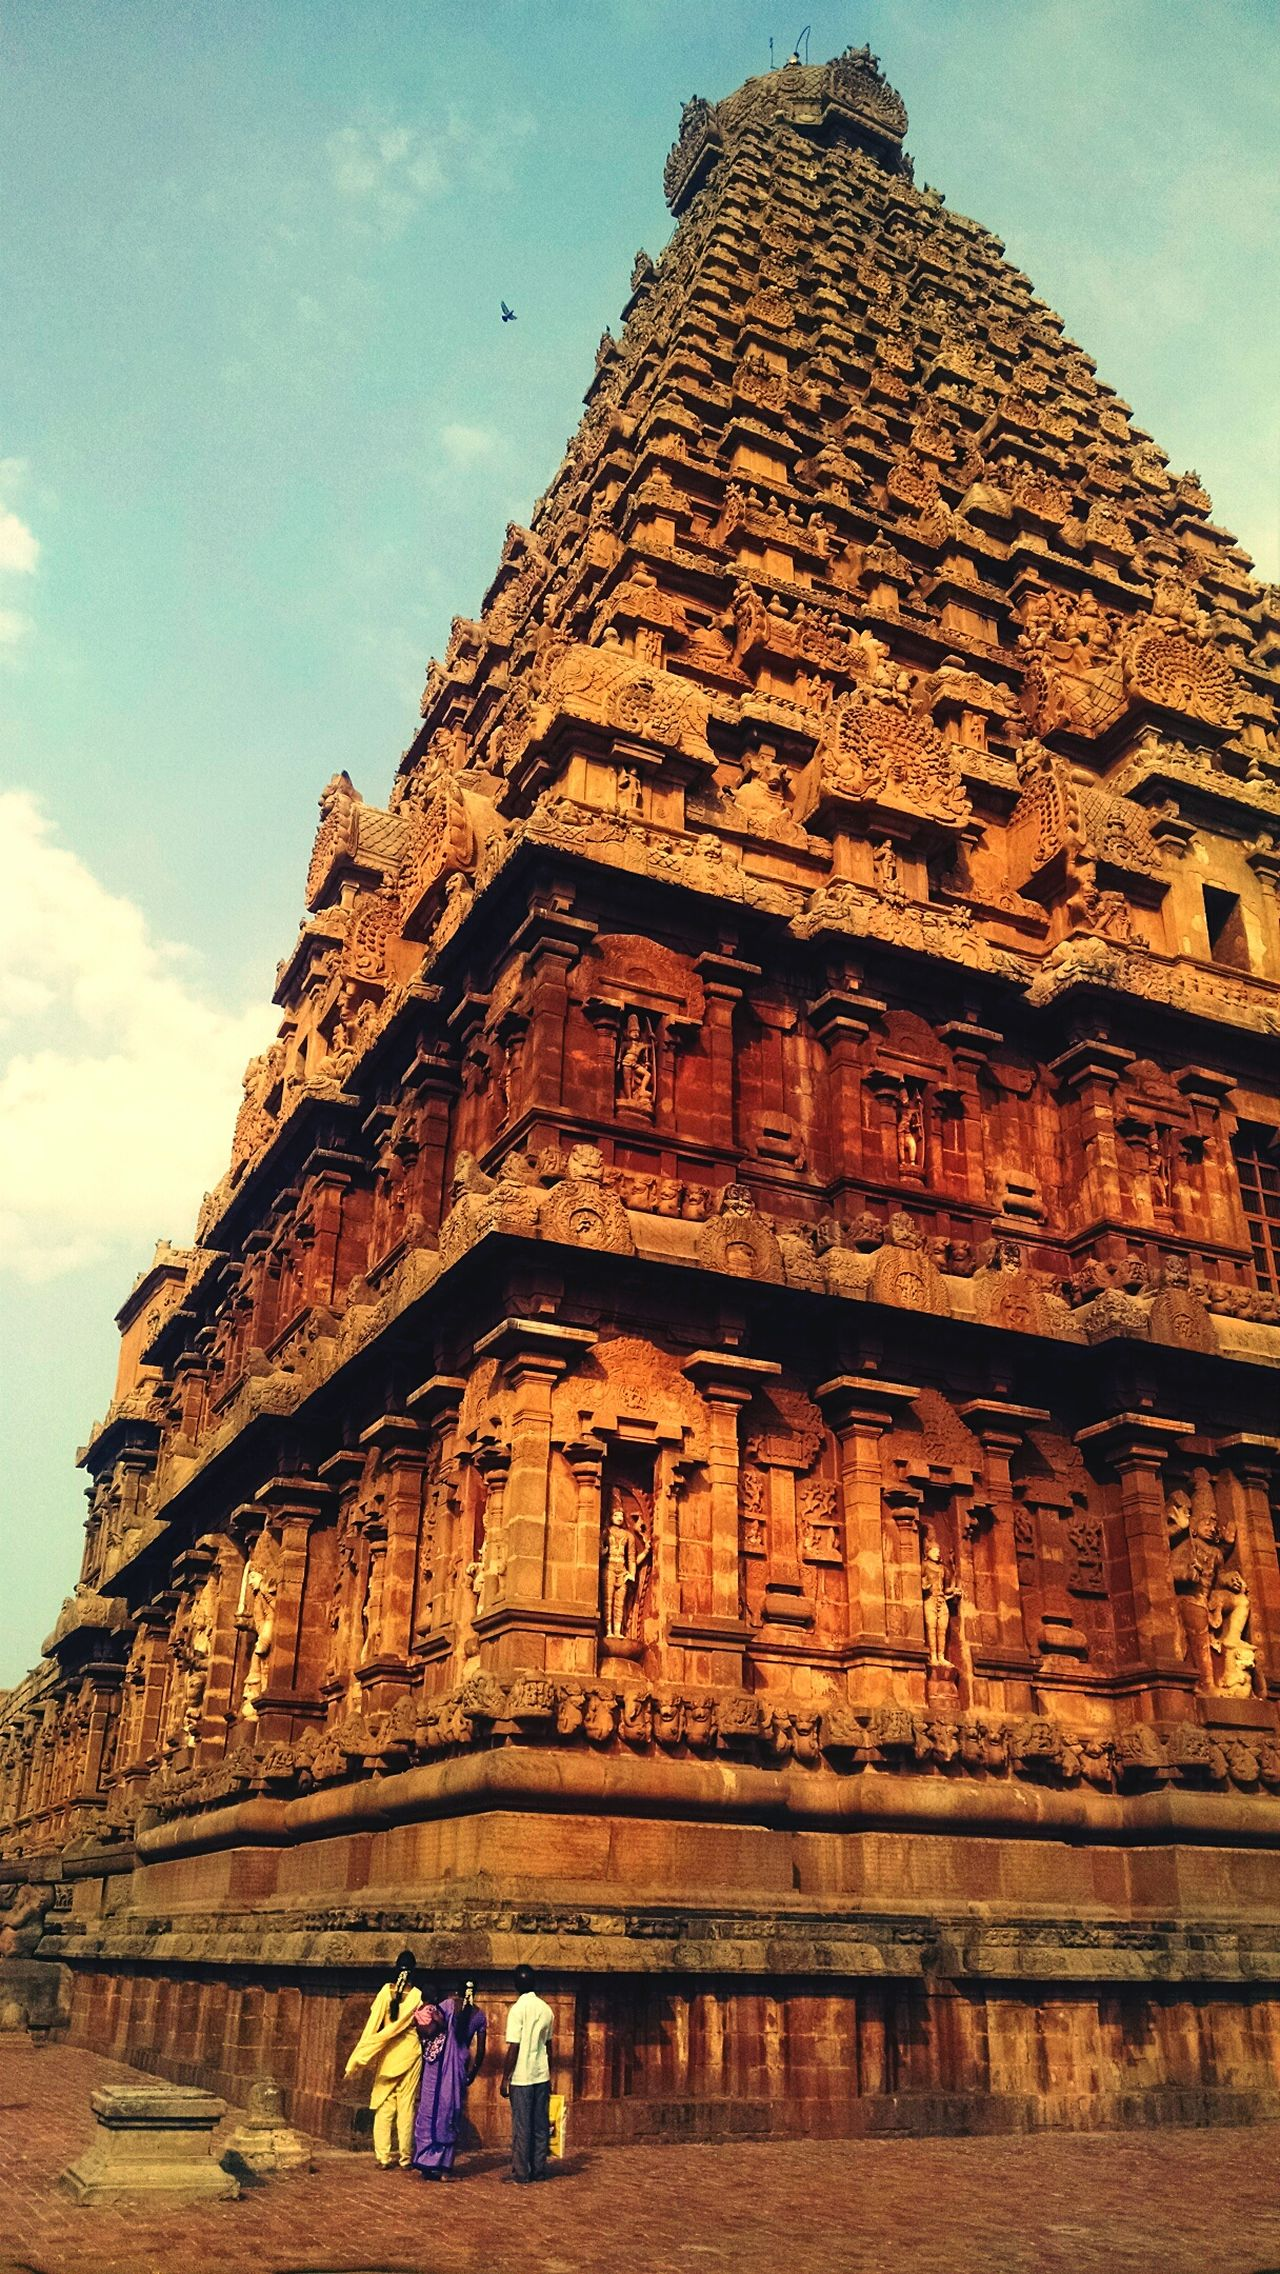 Architecture Travel Destinations Ancient Ancient Civilization History Old Ruin Built Structure Tourism Religion Archaeology Travel Building Exterior The Past Monument Ancient History Outdoors Vacations Tamilnadu Big Temple India Tanjore Travel